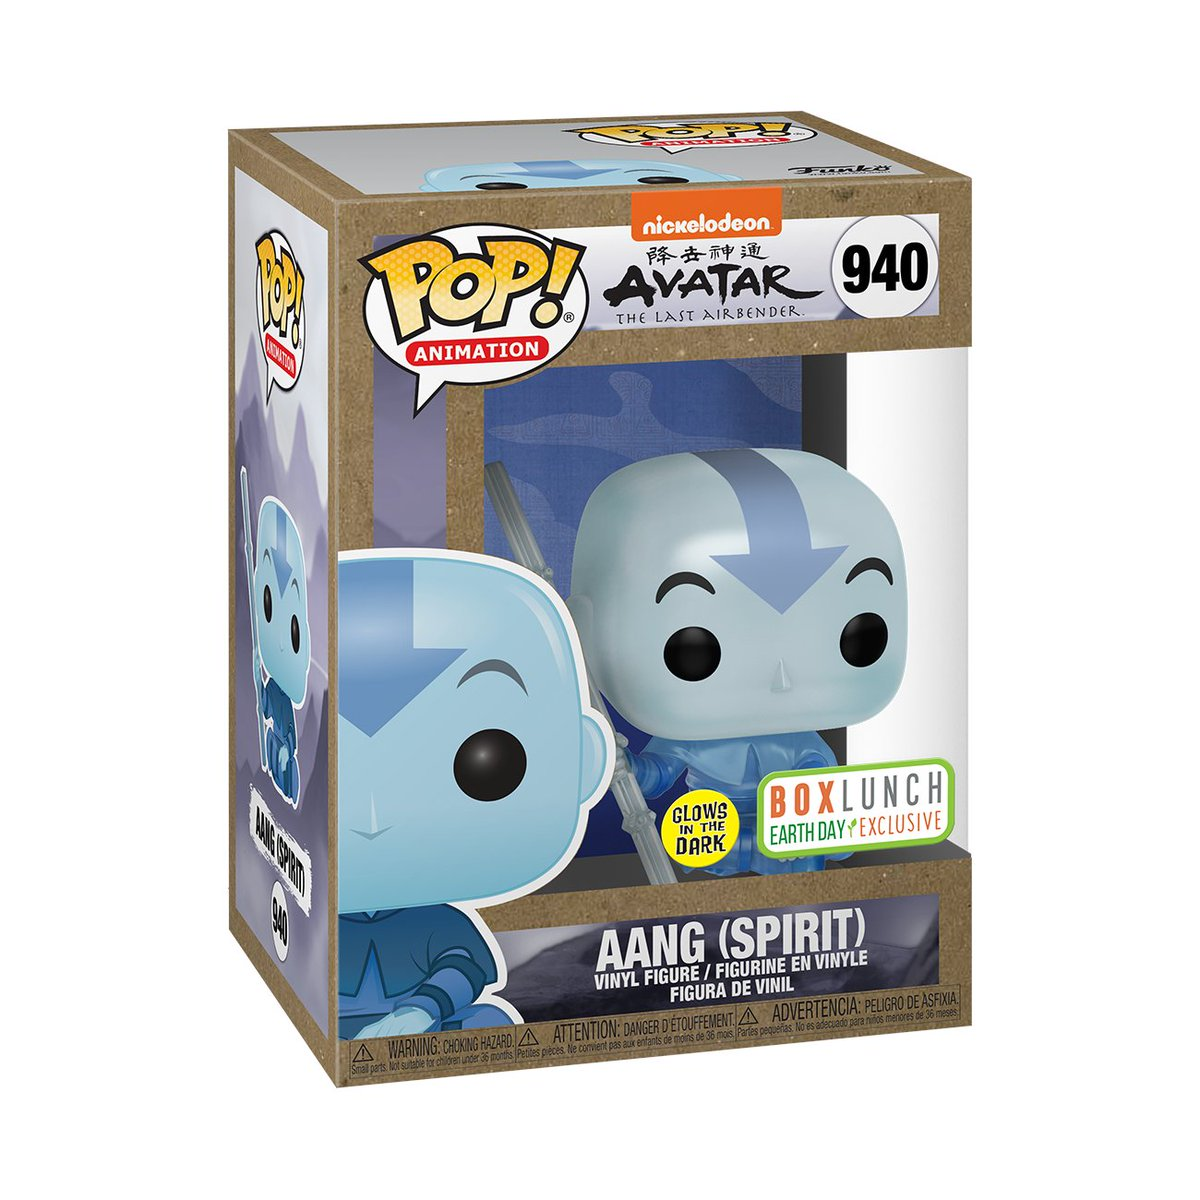 RT & follow @OriginalFunko for the chance to WIN this @BoxLunchGifts exclusive (glow-in-the-dark) Aang (Spirit) Pop! This Pop! is now available at your local Box Lunch! #Funko #FunkoPop #Funkogiveaway #Giveaway #Avatar https://t.co/WdqSvnYdX1